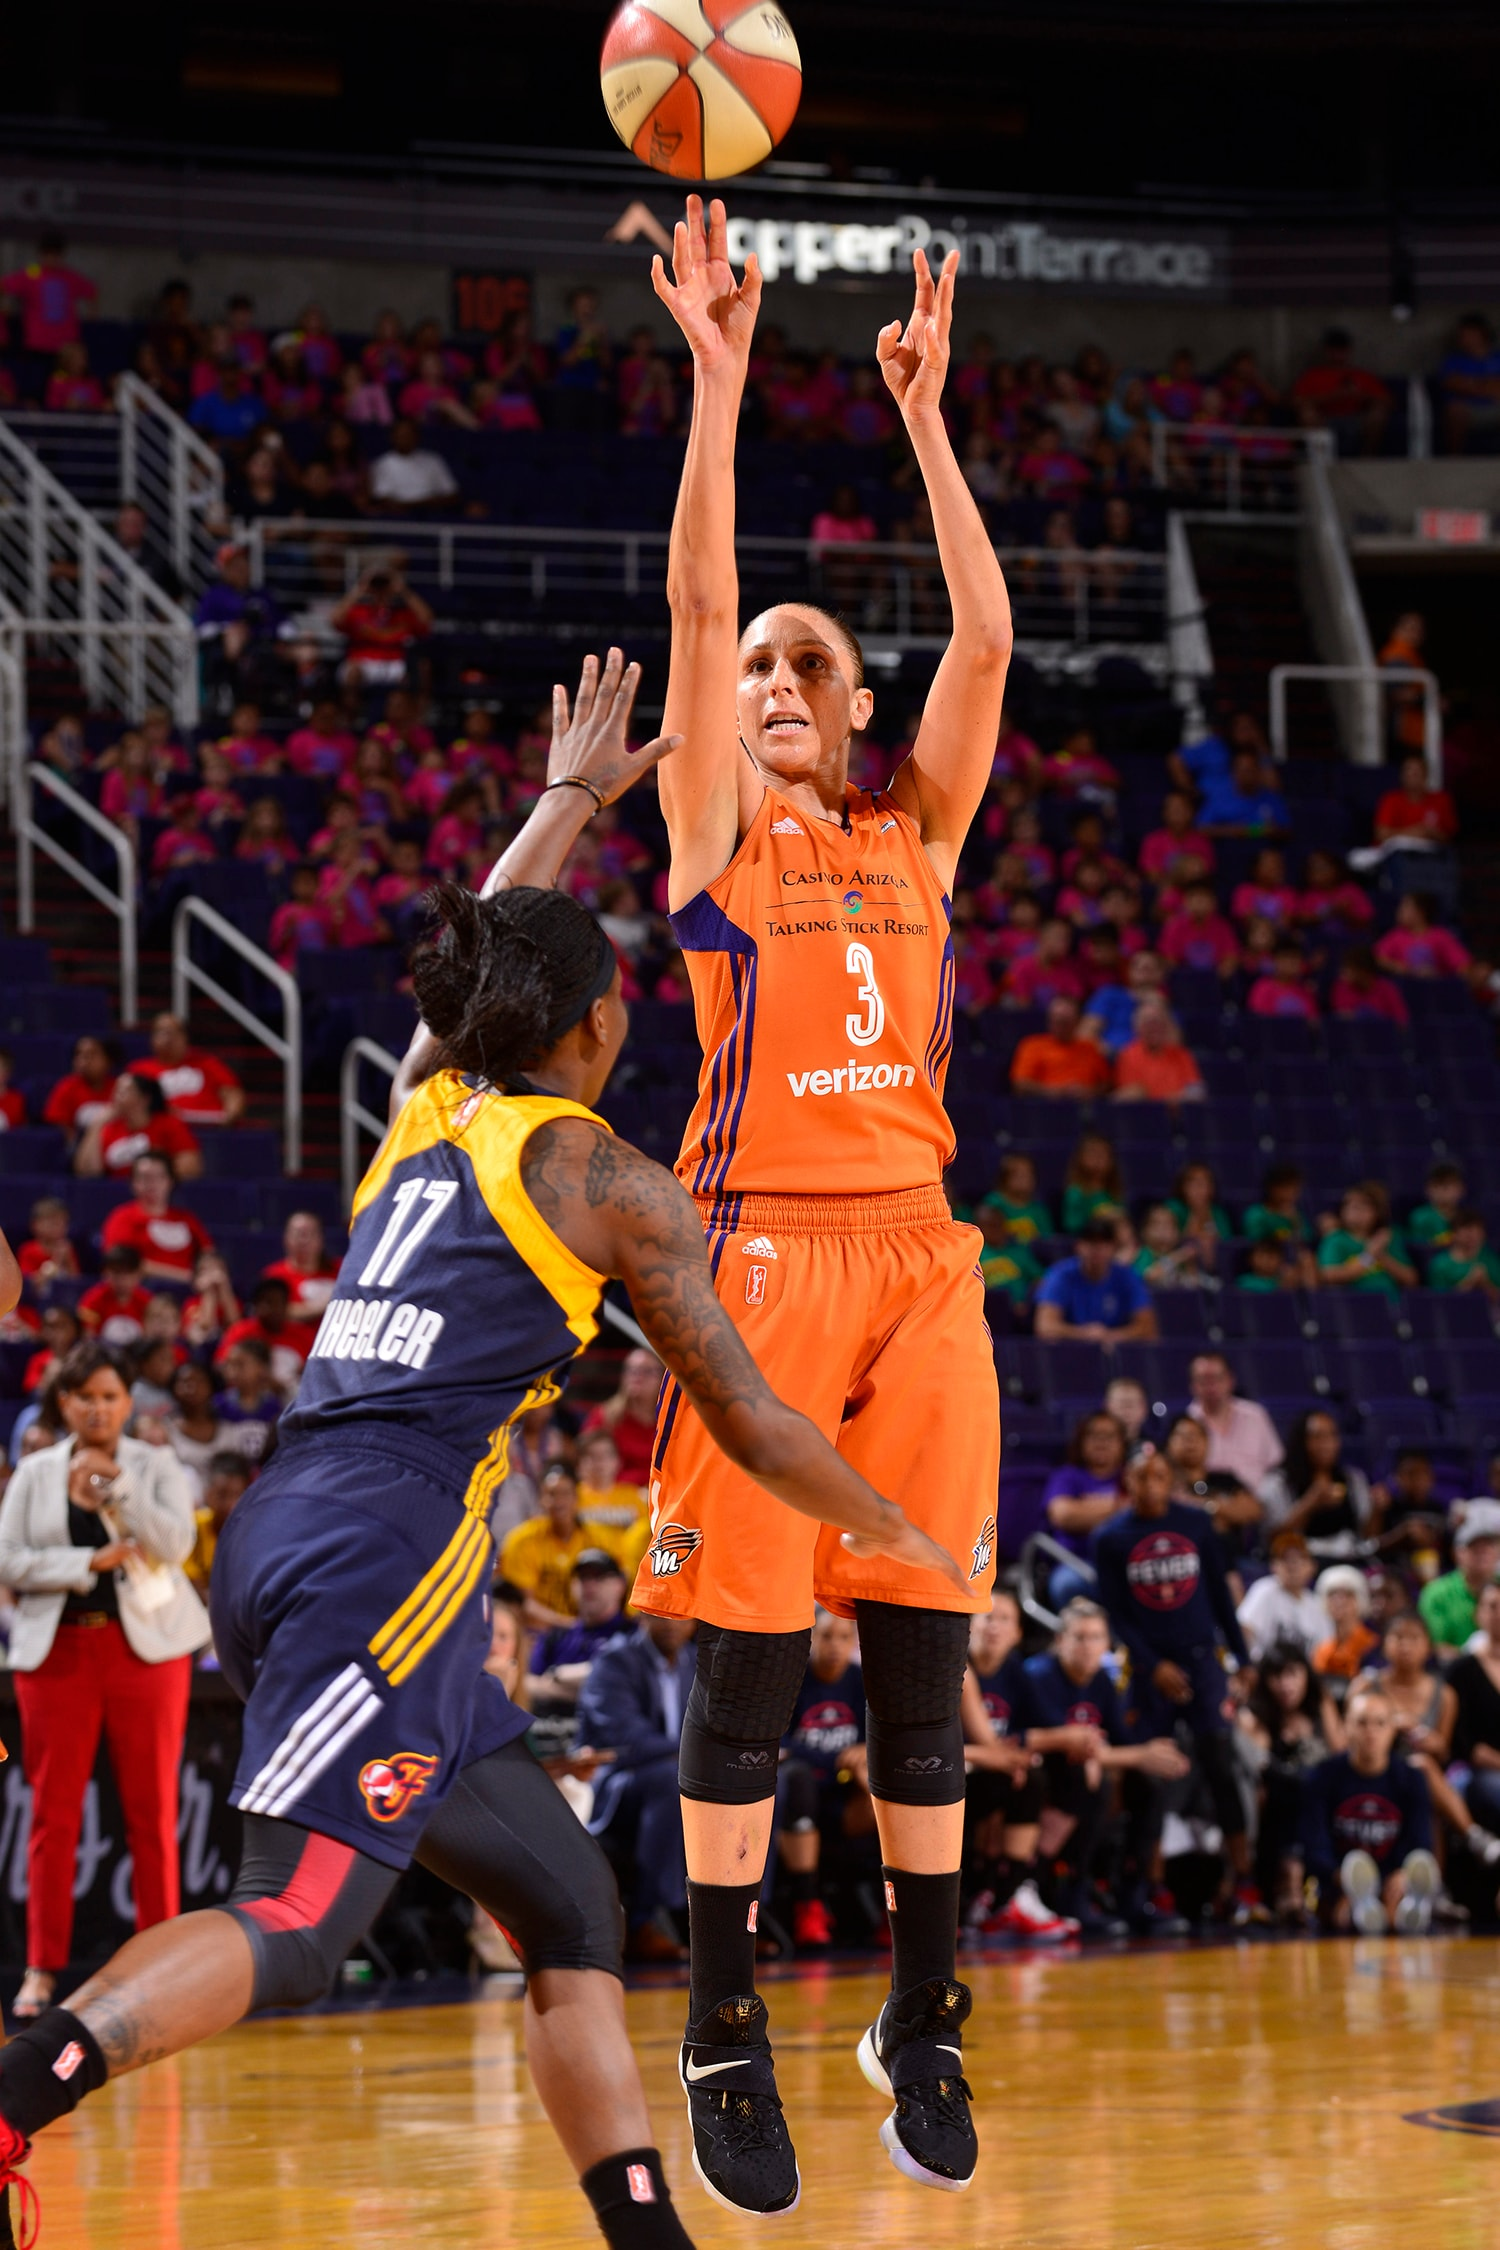 phoenix mercury indiana fever july 19, 2017 diana taurasi